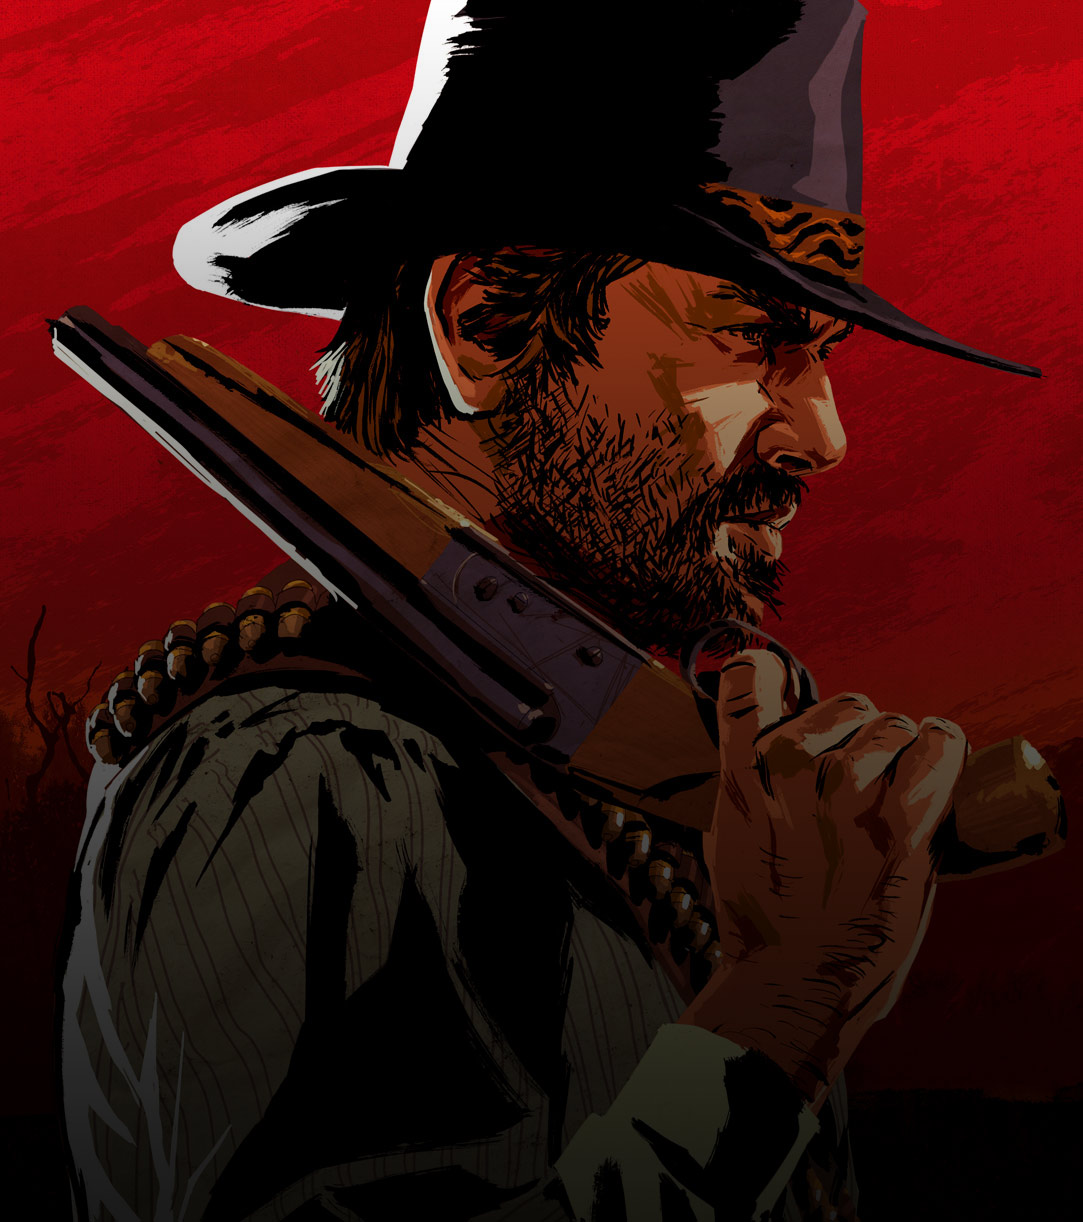 Arthur Stands In Profile While Holding A Sawed Off Shotgun Over His Shoulder